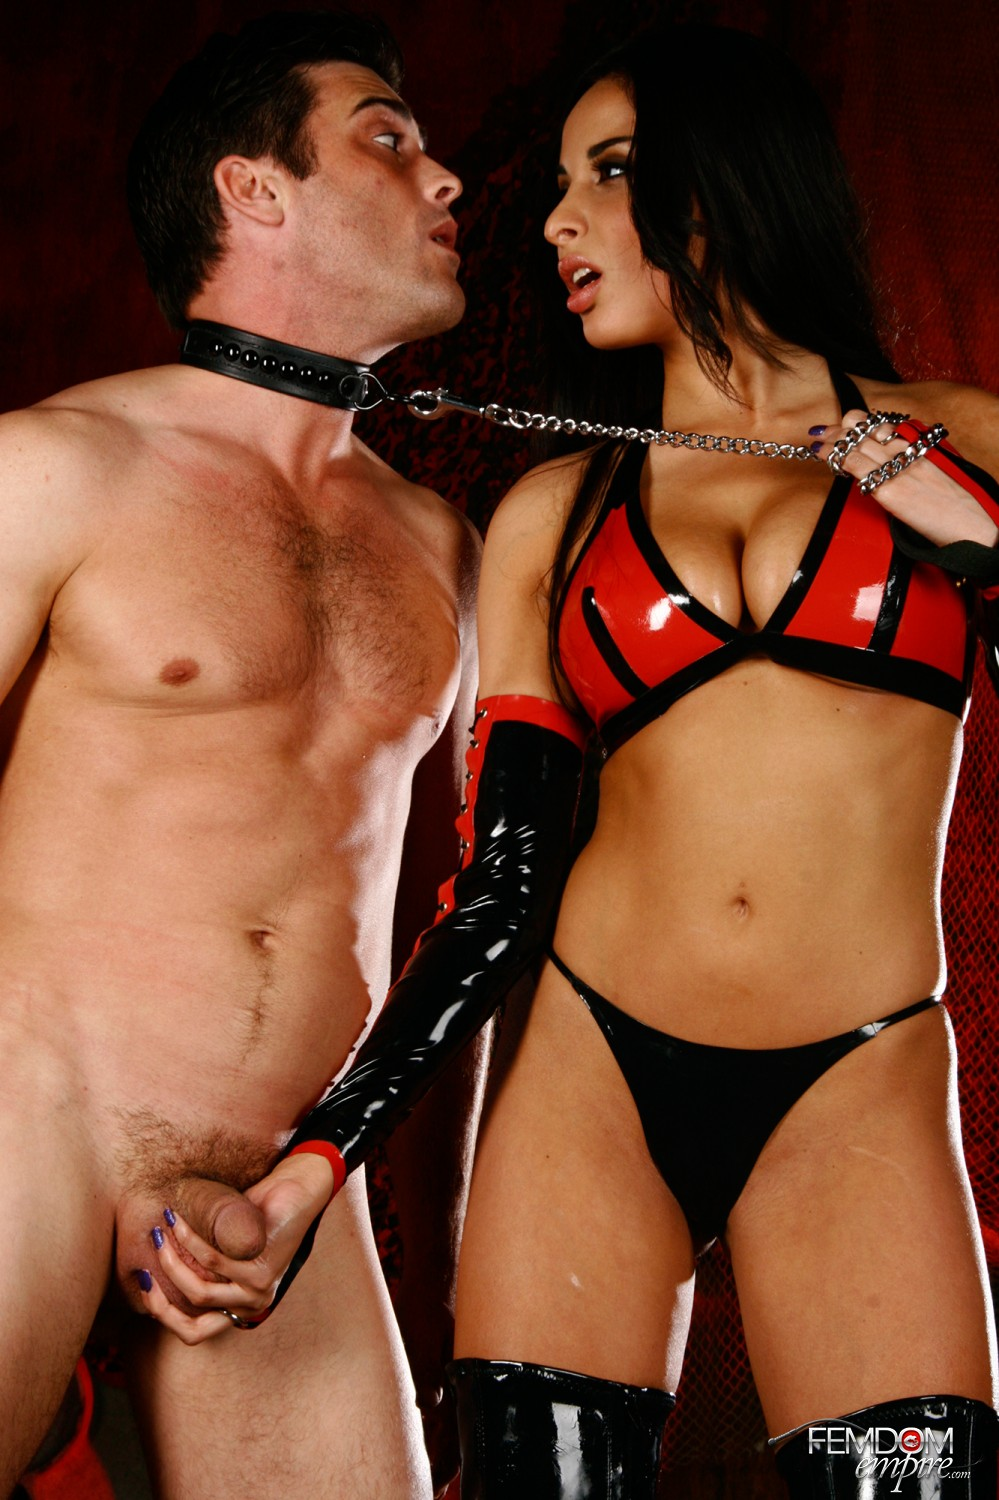 Domme Anissa Kate takes her slave by the nut and puts him to work worshiping her donk.